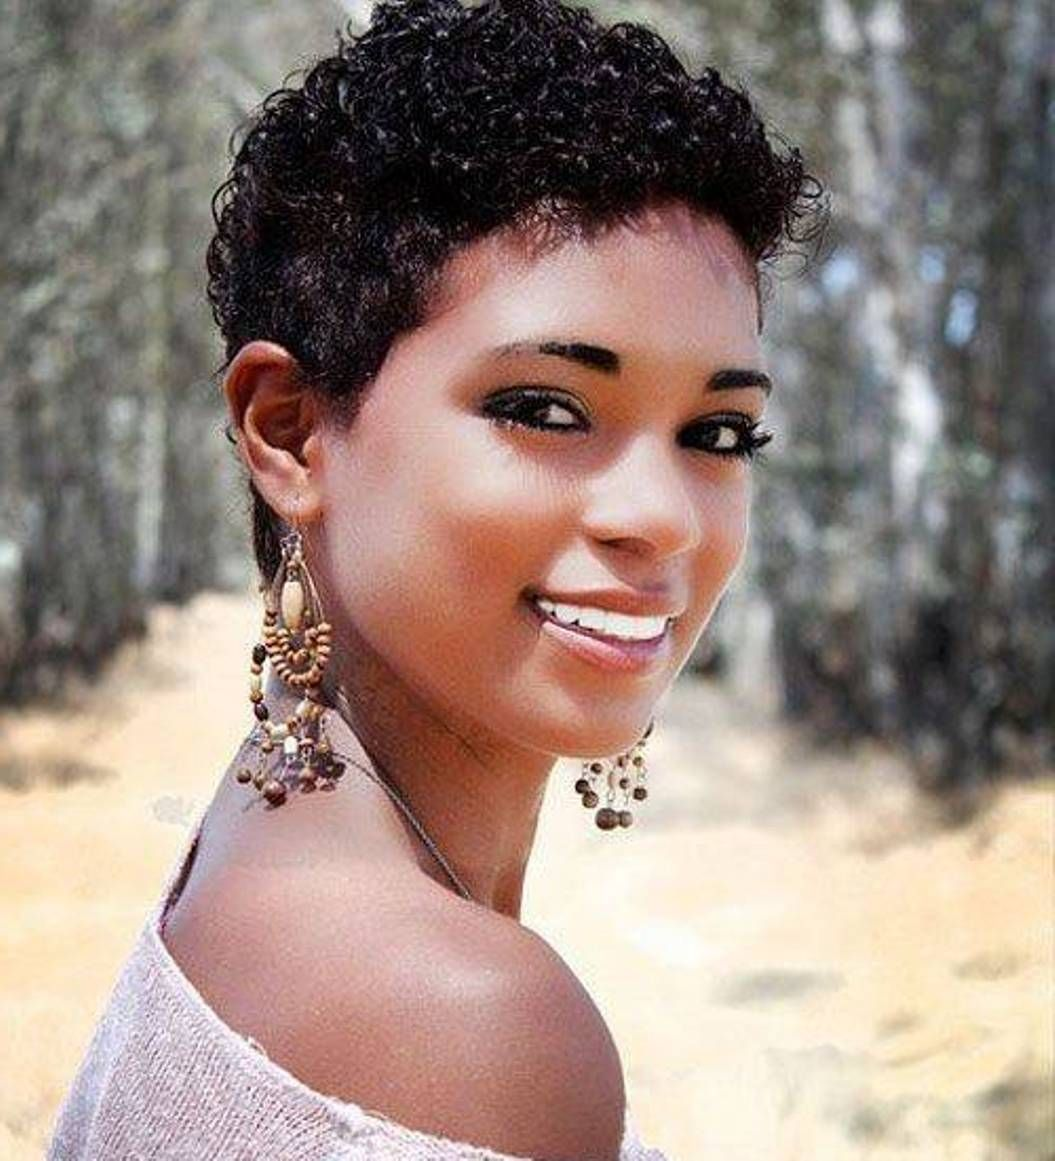 Phenomenal 1000 Images About Hair Styles On Pinterest Short Natural Short Hairstyles Gunalazisus